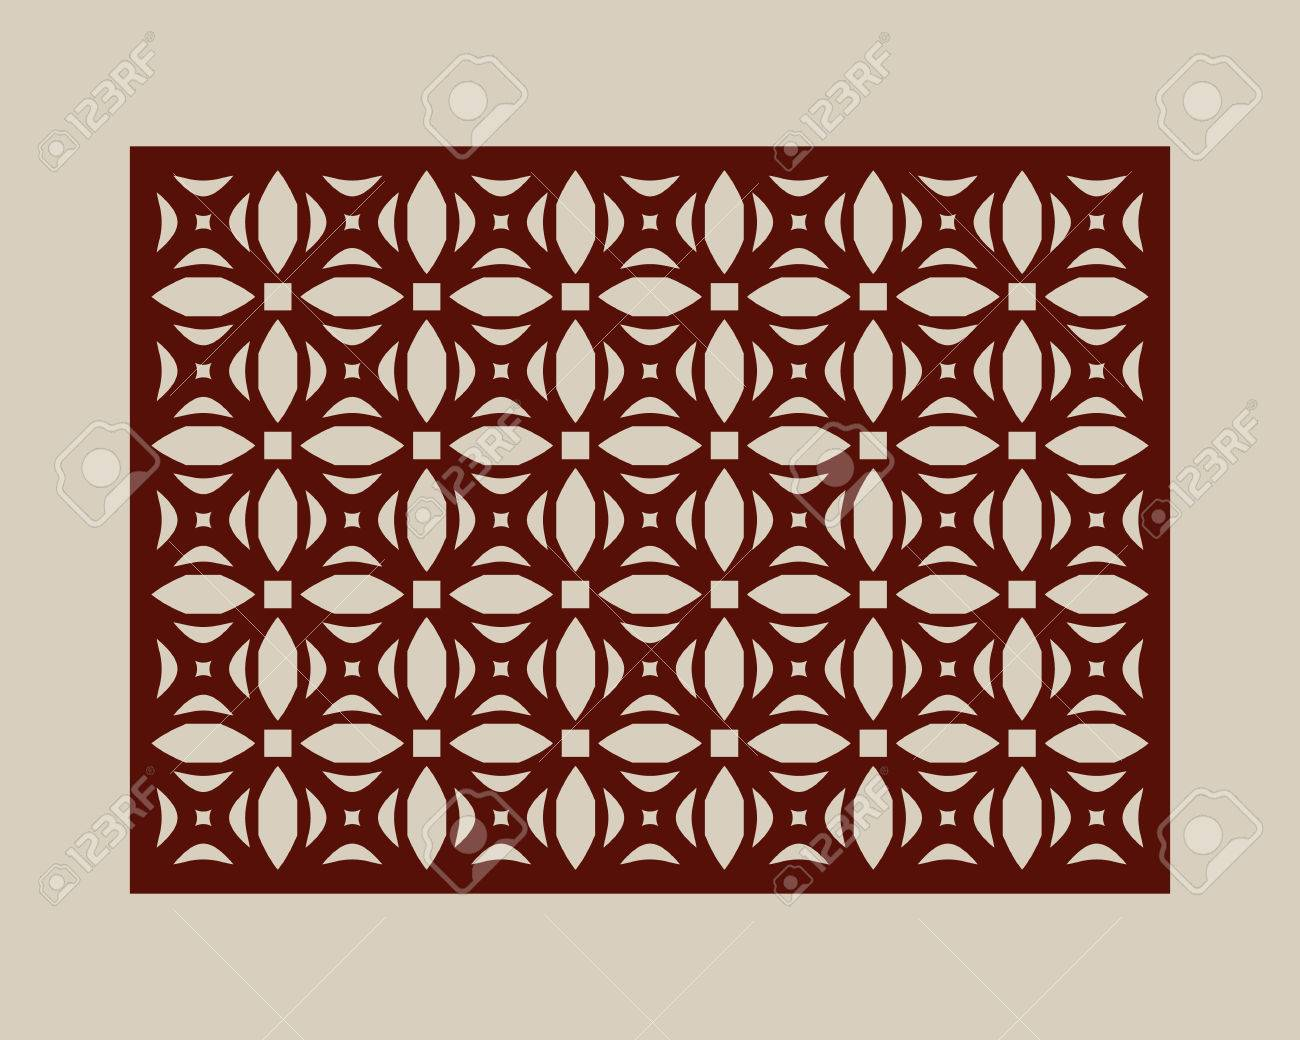 Geometric ornament. The template pattern for decorative panel. A picture suitable for paper cutting, printing, laser cutting or engraving wood, metal. Stencil manufacturing. Vector - 65452603